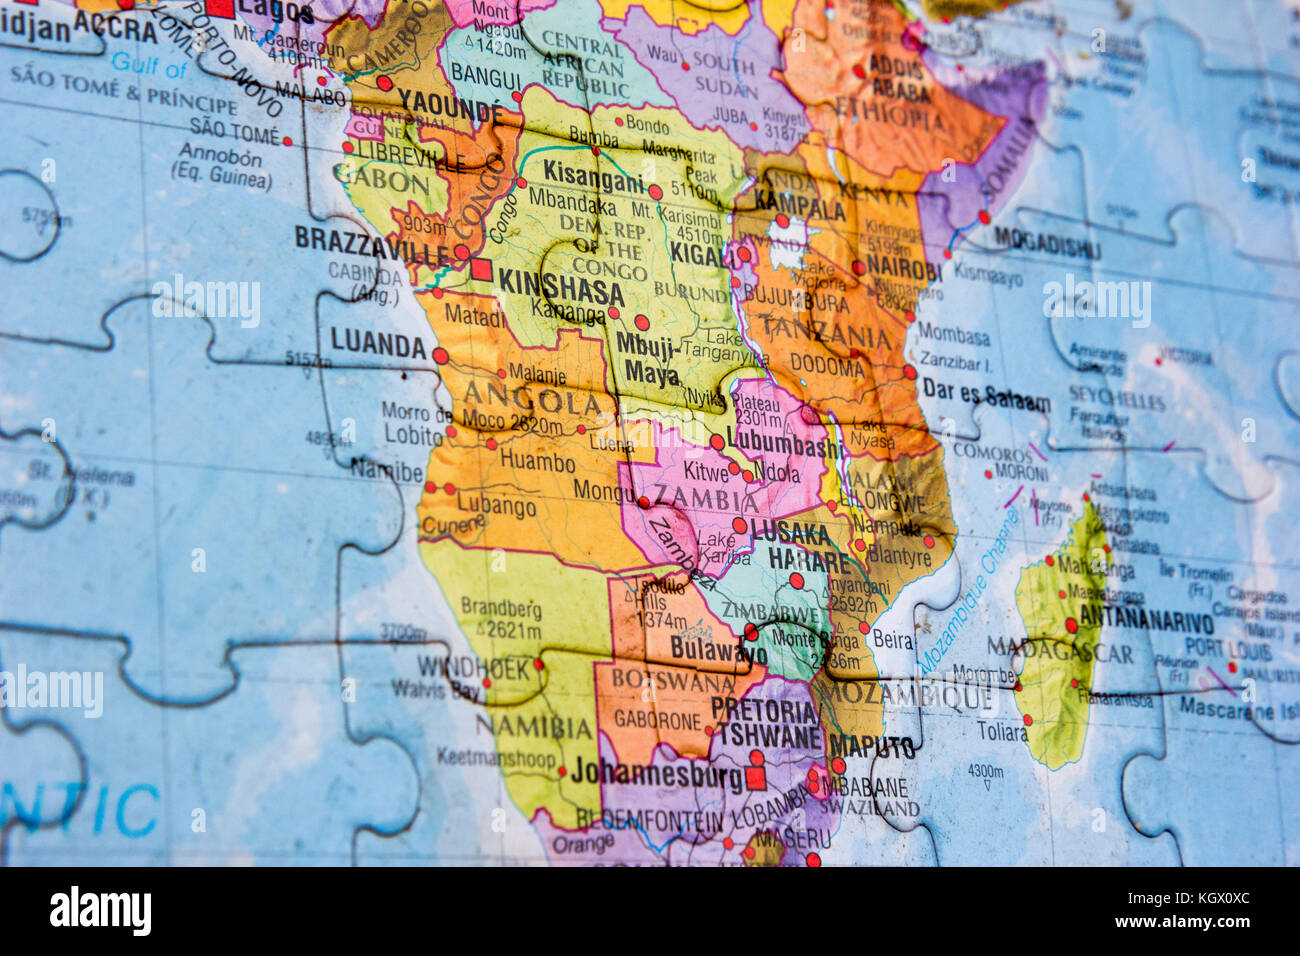 Africa Map Mozambique%0A World map puzzle  Stock Image